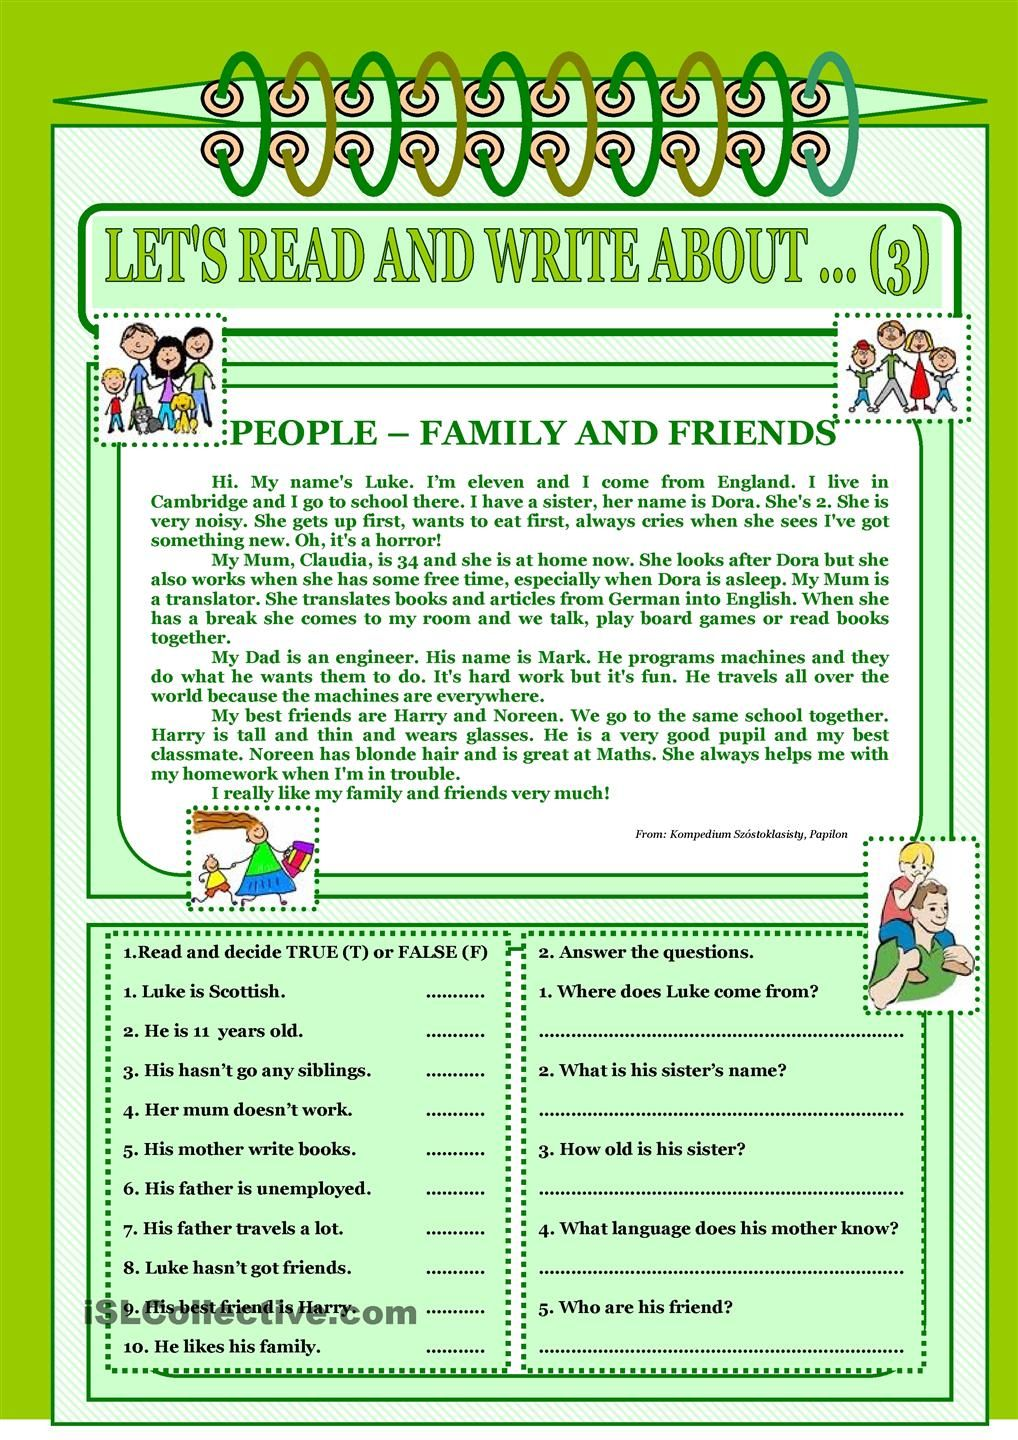 worksheet Family And Friends 1 Worksheets read and write about 3 family friends english worksheet free esl printable worksheets made by teachers